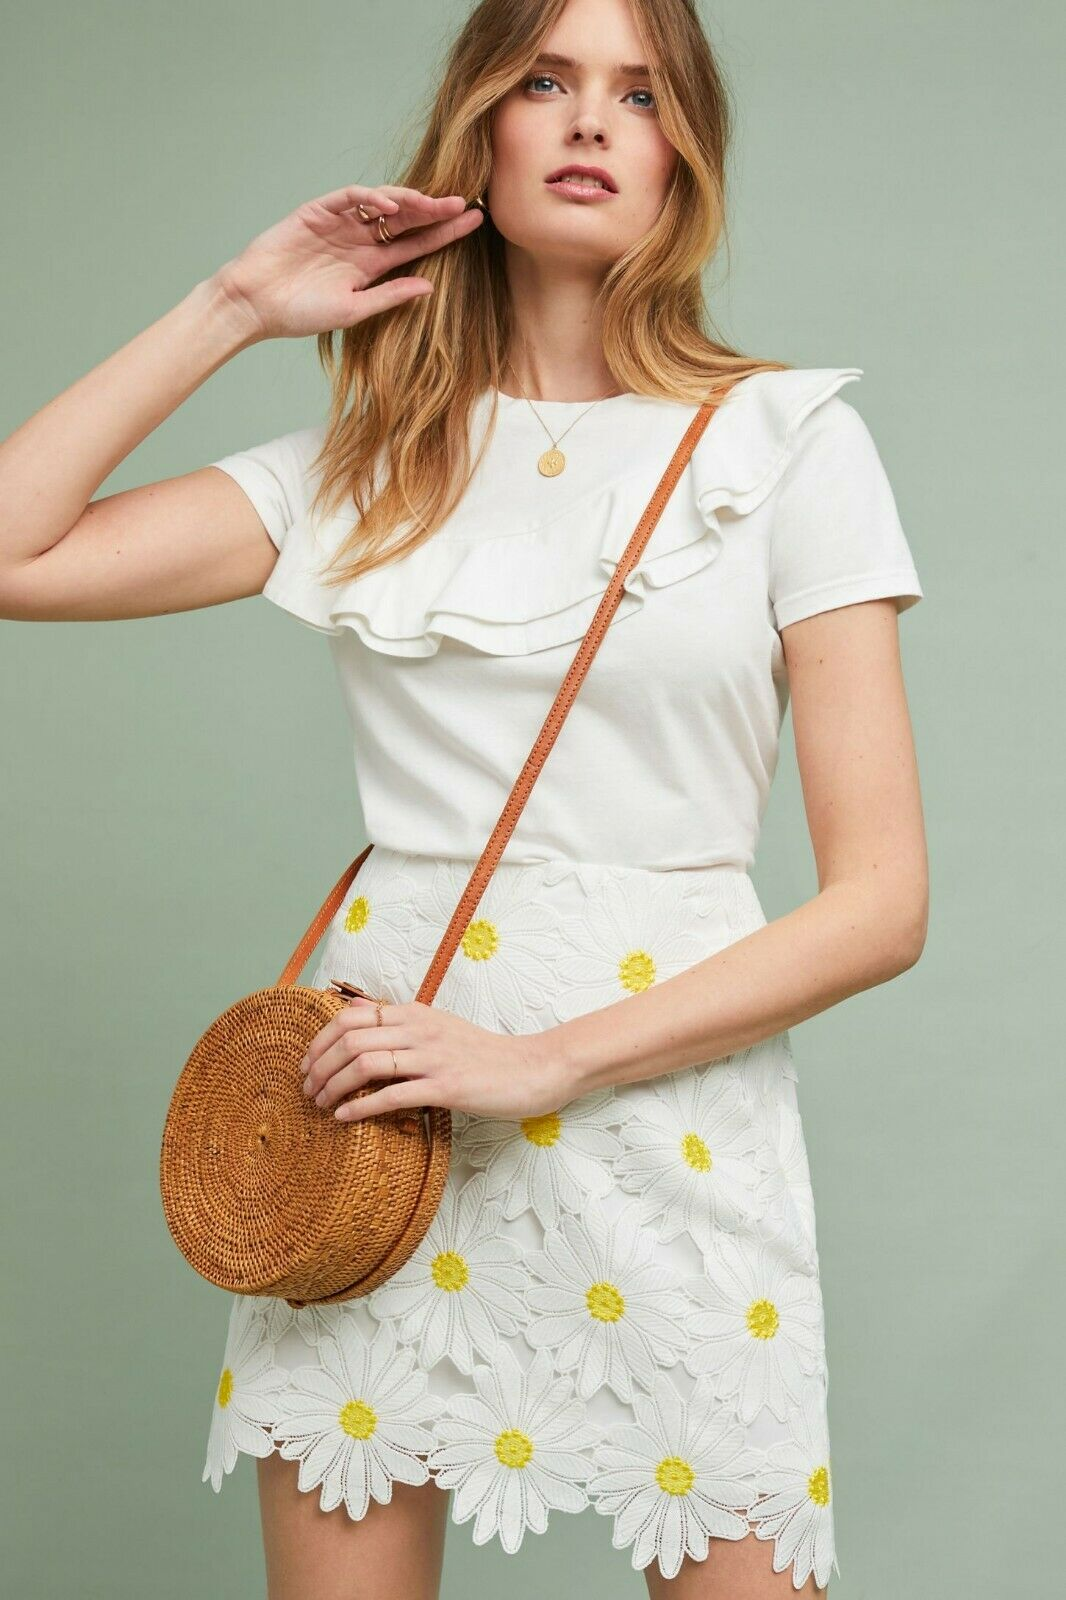 Anthropologie Hutch Daisy Lace Skirt Yellow White Daisies Size 6 NEW